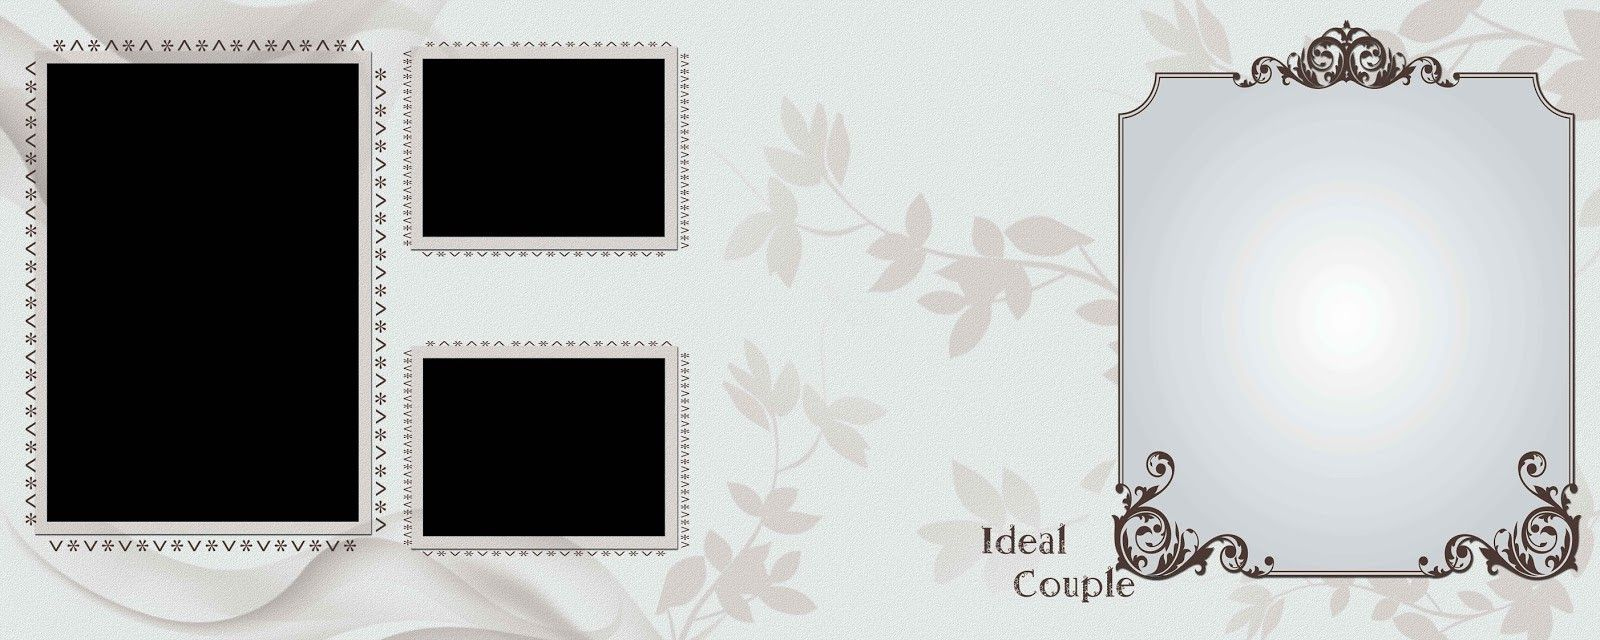 Free Download Wedding Album Psd Templates 12x36 Collection With